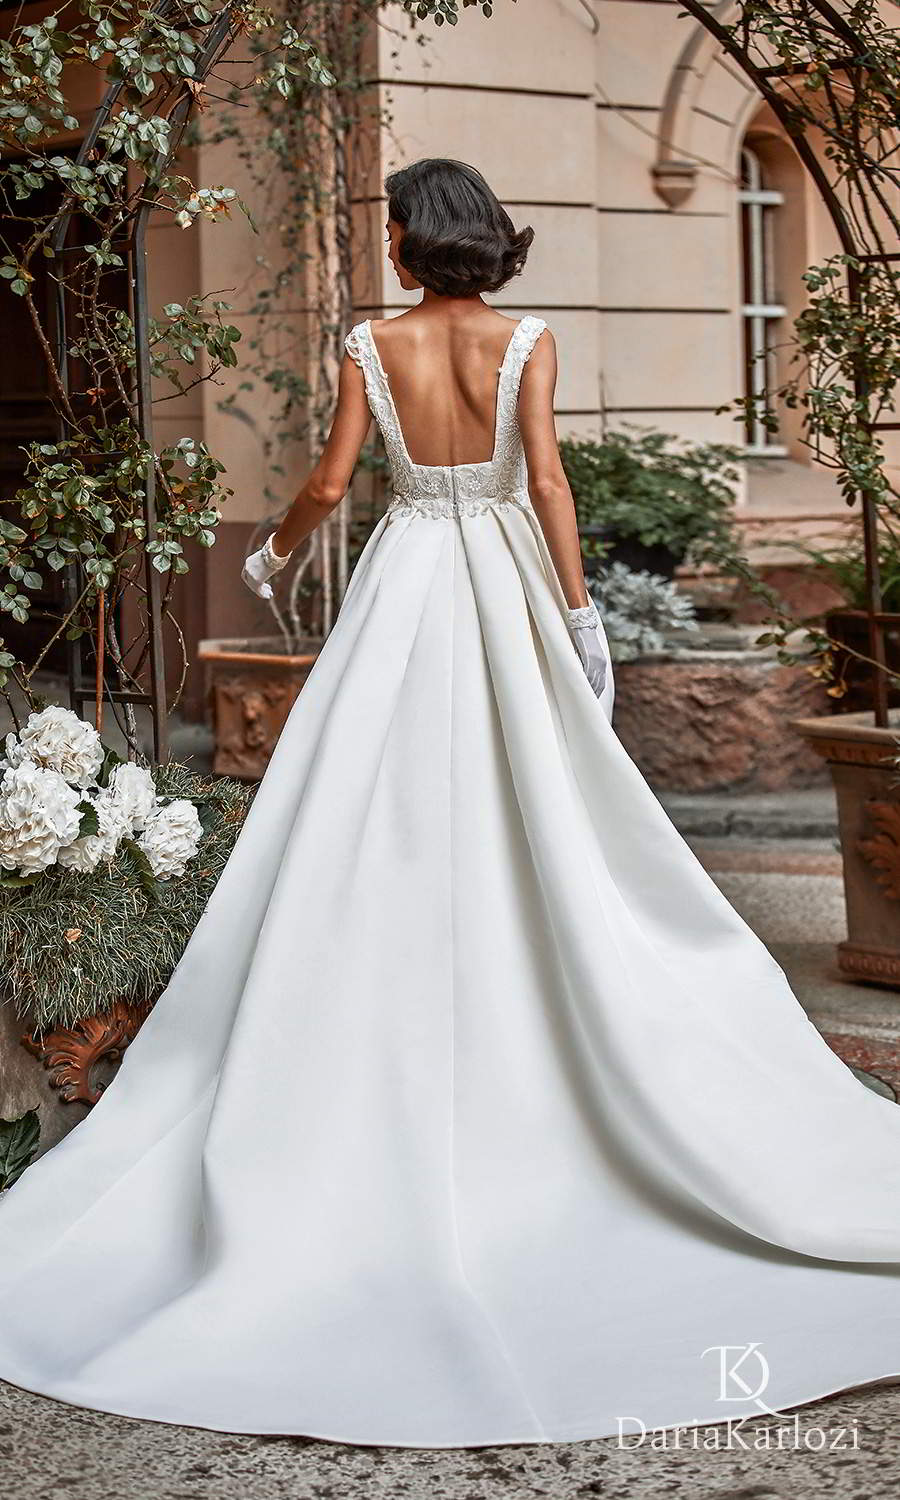 daria karlozi 2021 graceful dream bridal sleeveless thick straps square neckline heavily embellished bodice clean skirt a line ball gown wedding dress chapel train (first love) bv